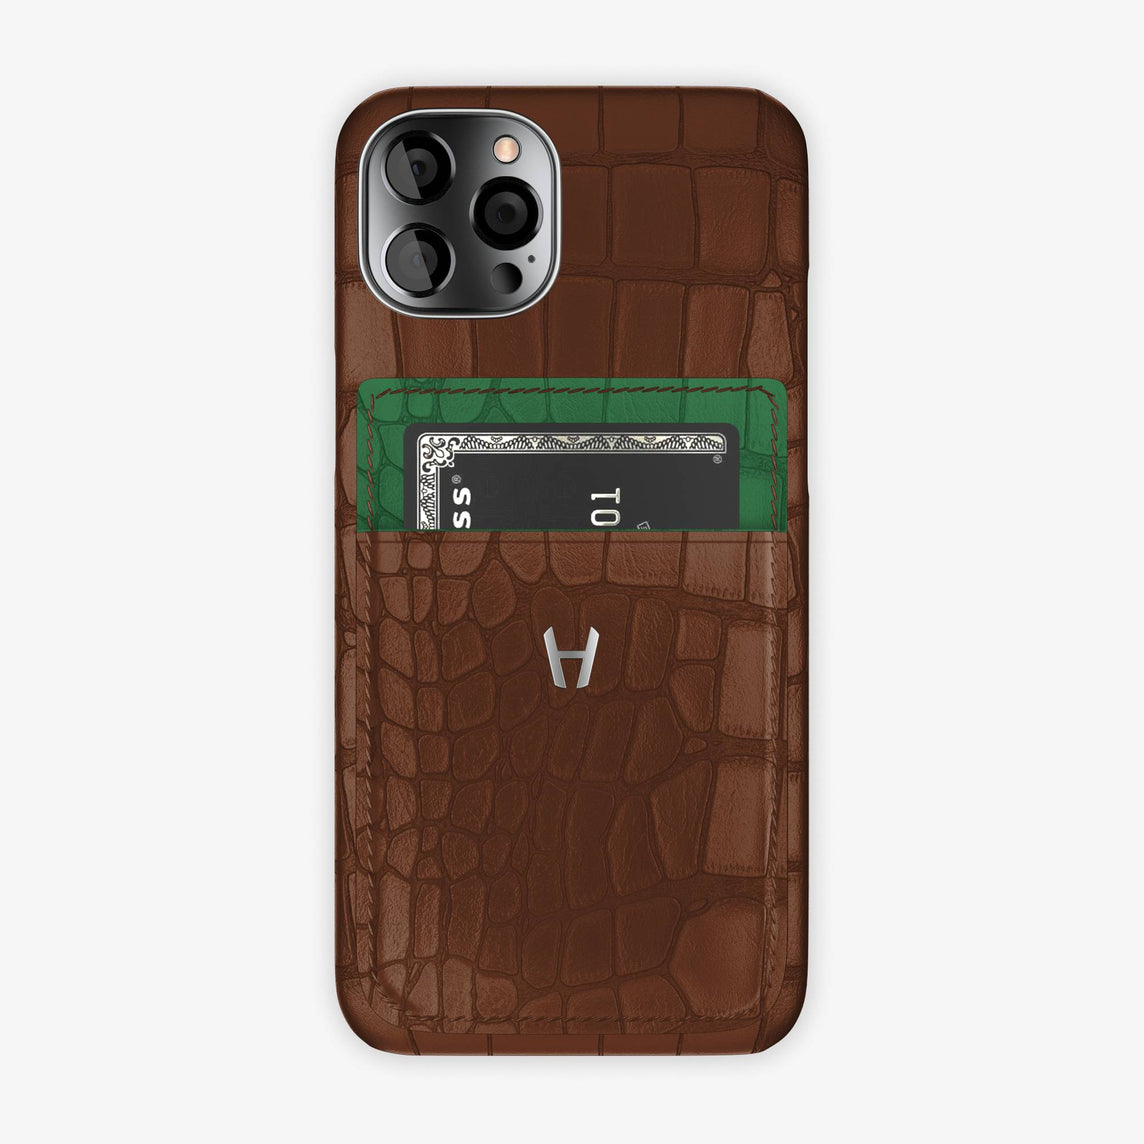 Alligator Pocket Case iPhone 12 & 12 Pro | Brown/Green Emerald - Stainless Steel